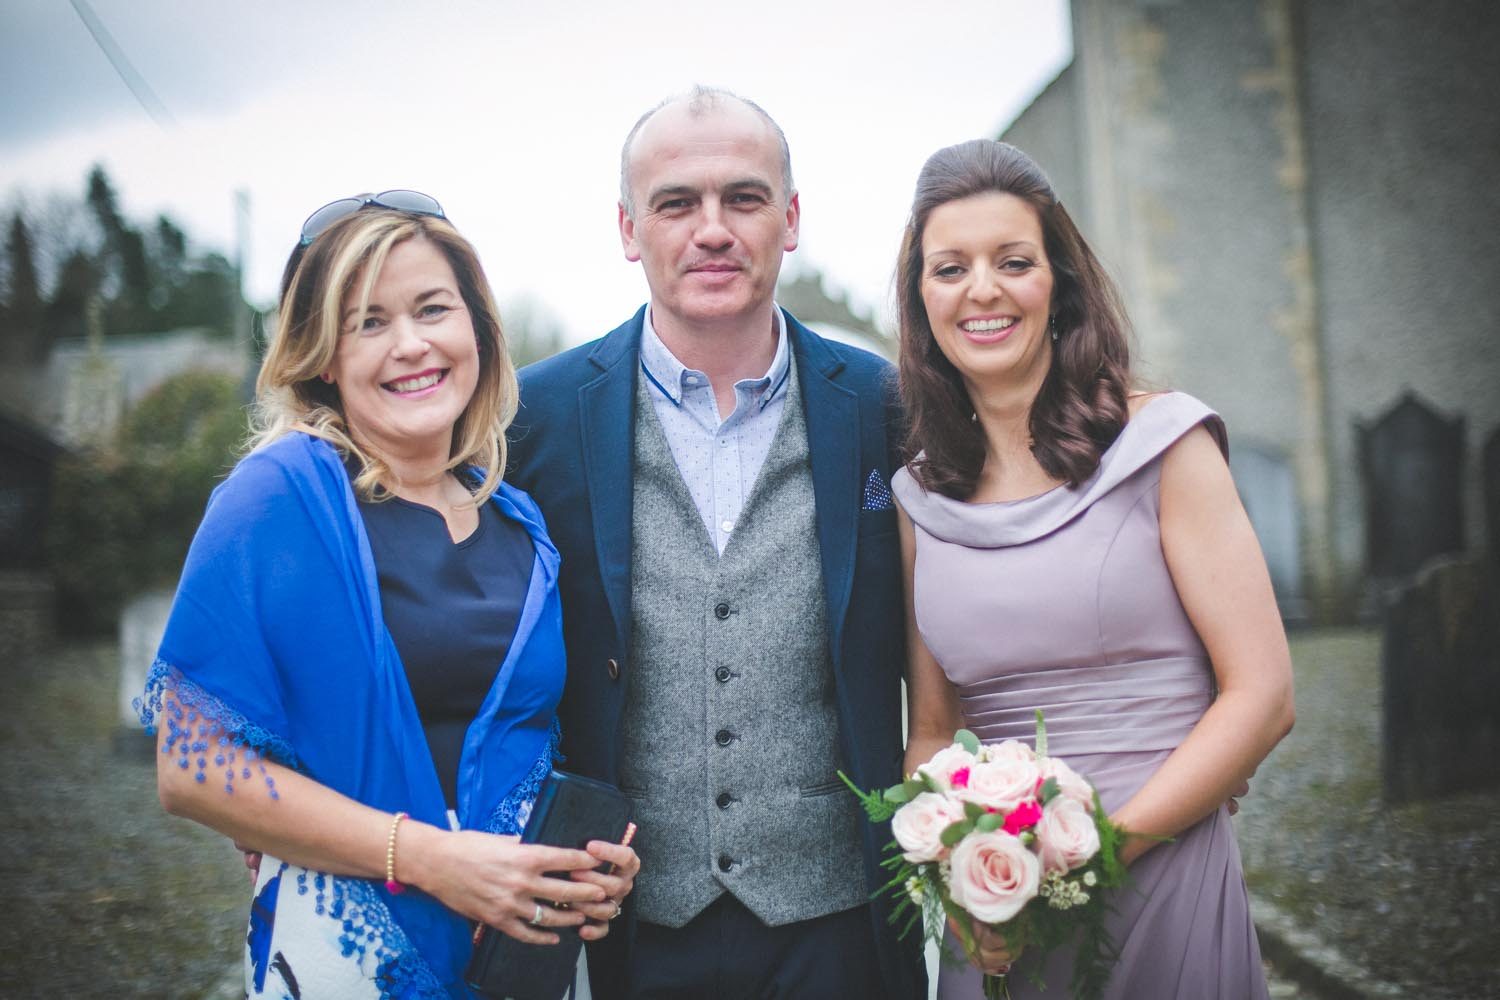 Step House wedding photographer Carlow Borris062.jpg